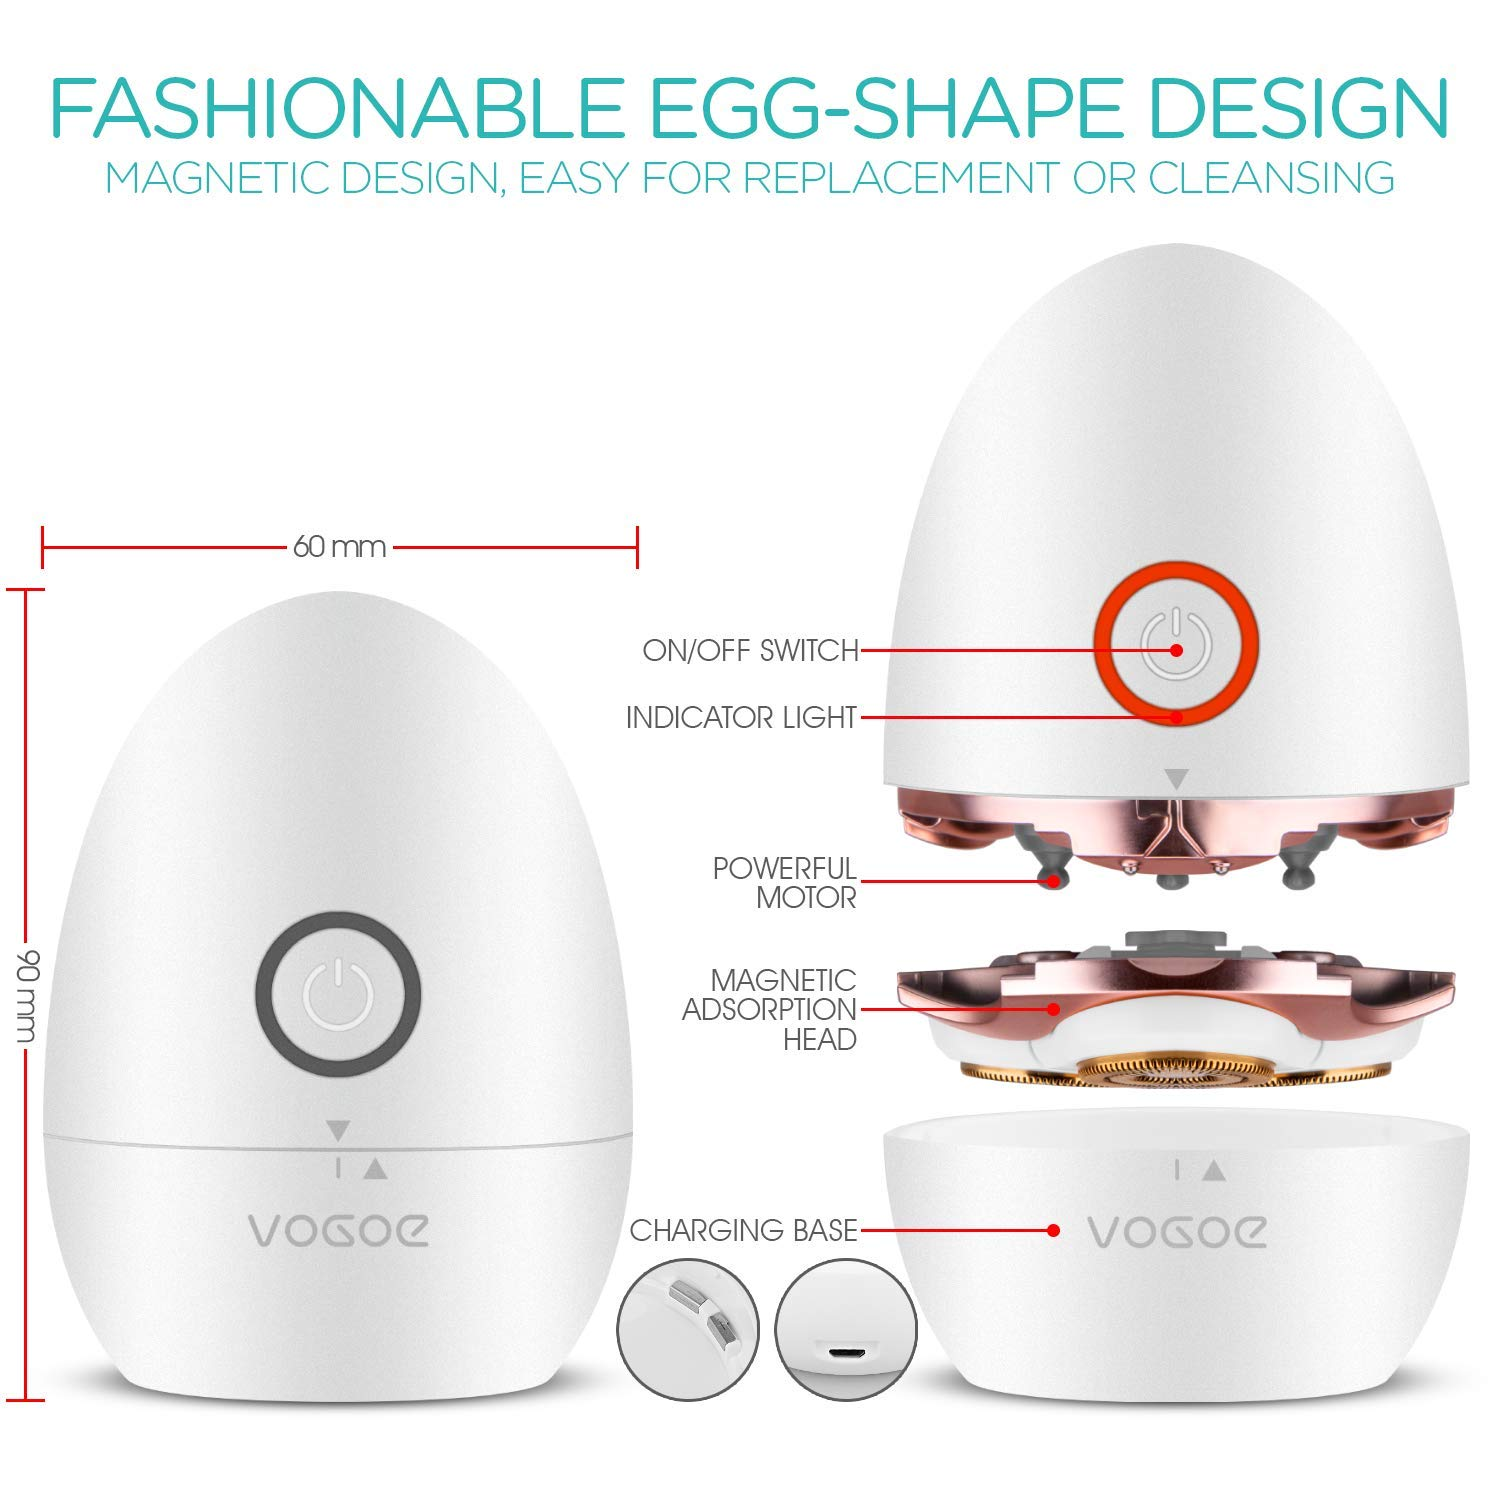 Women's Electric Shaver Hair Remover Waterproof Rotary Razor Fashion Egg Shape